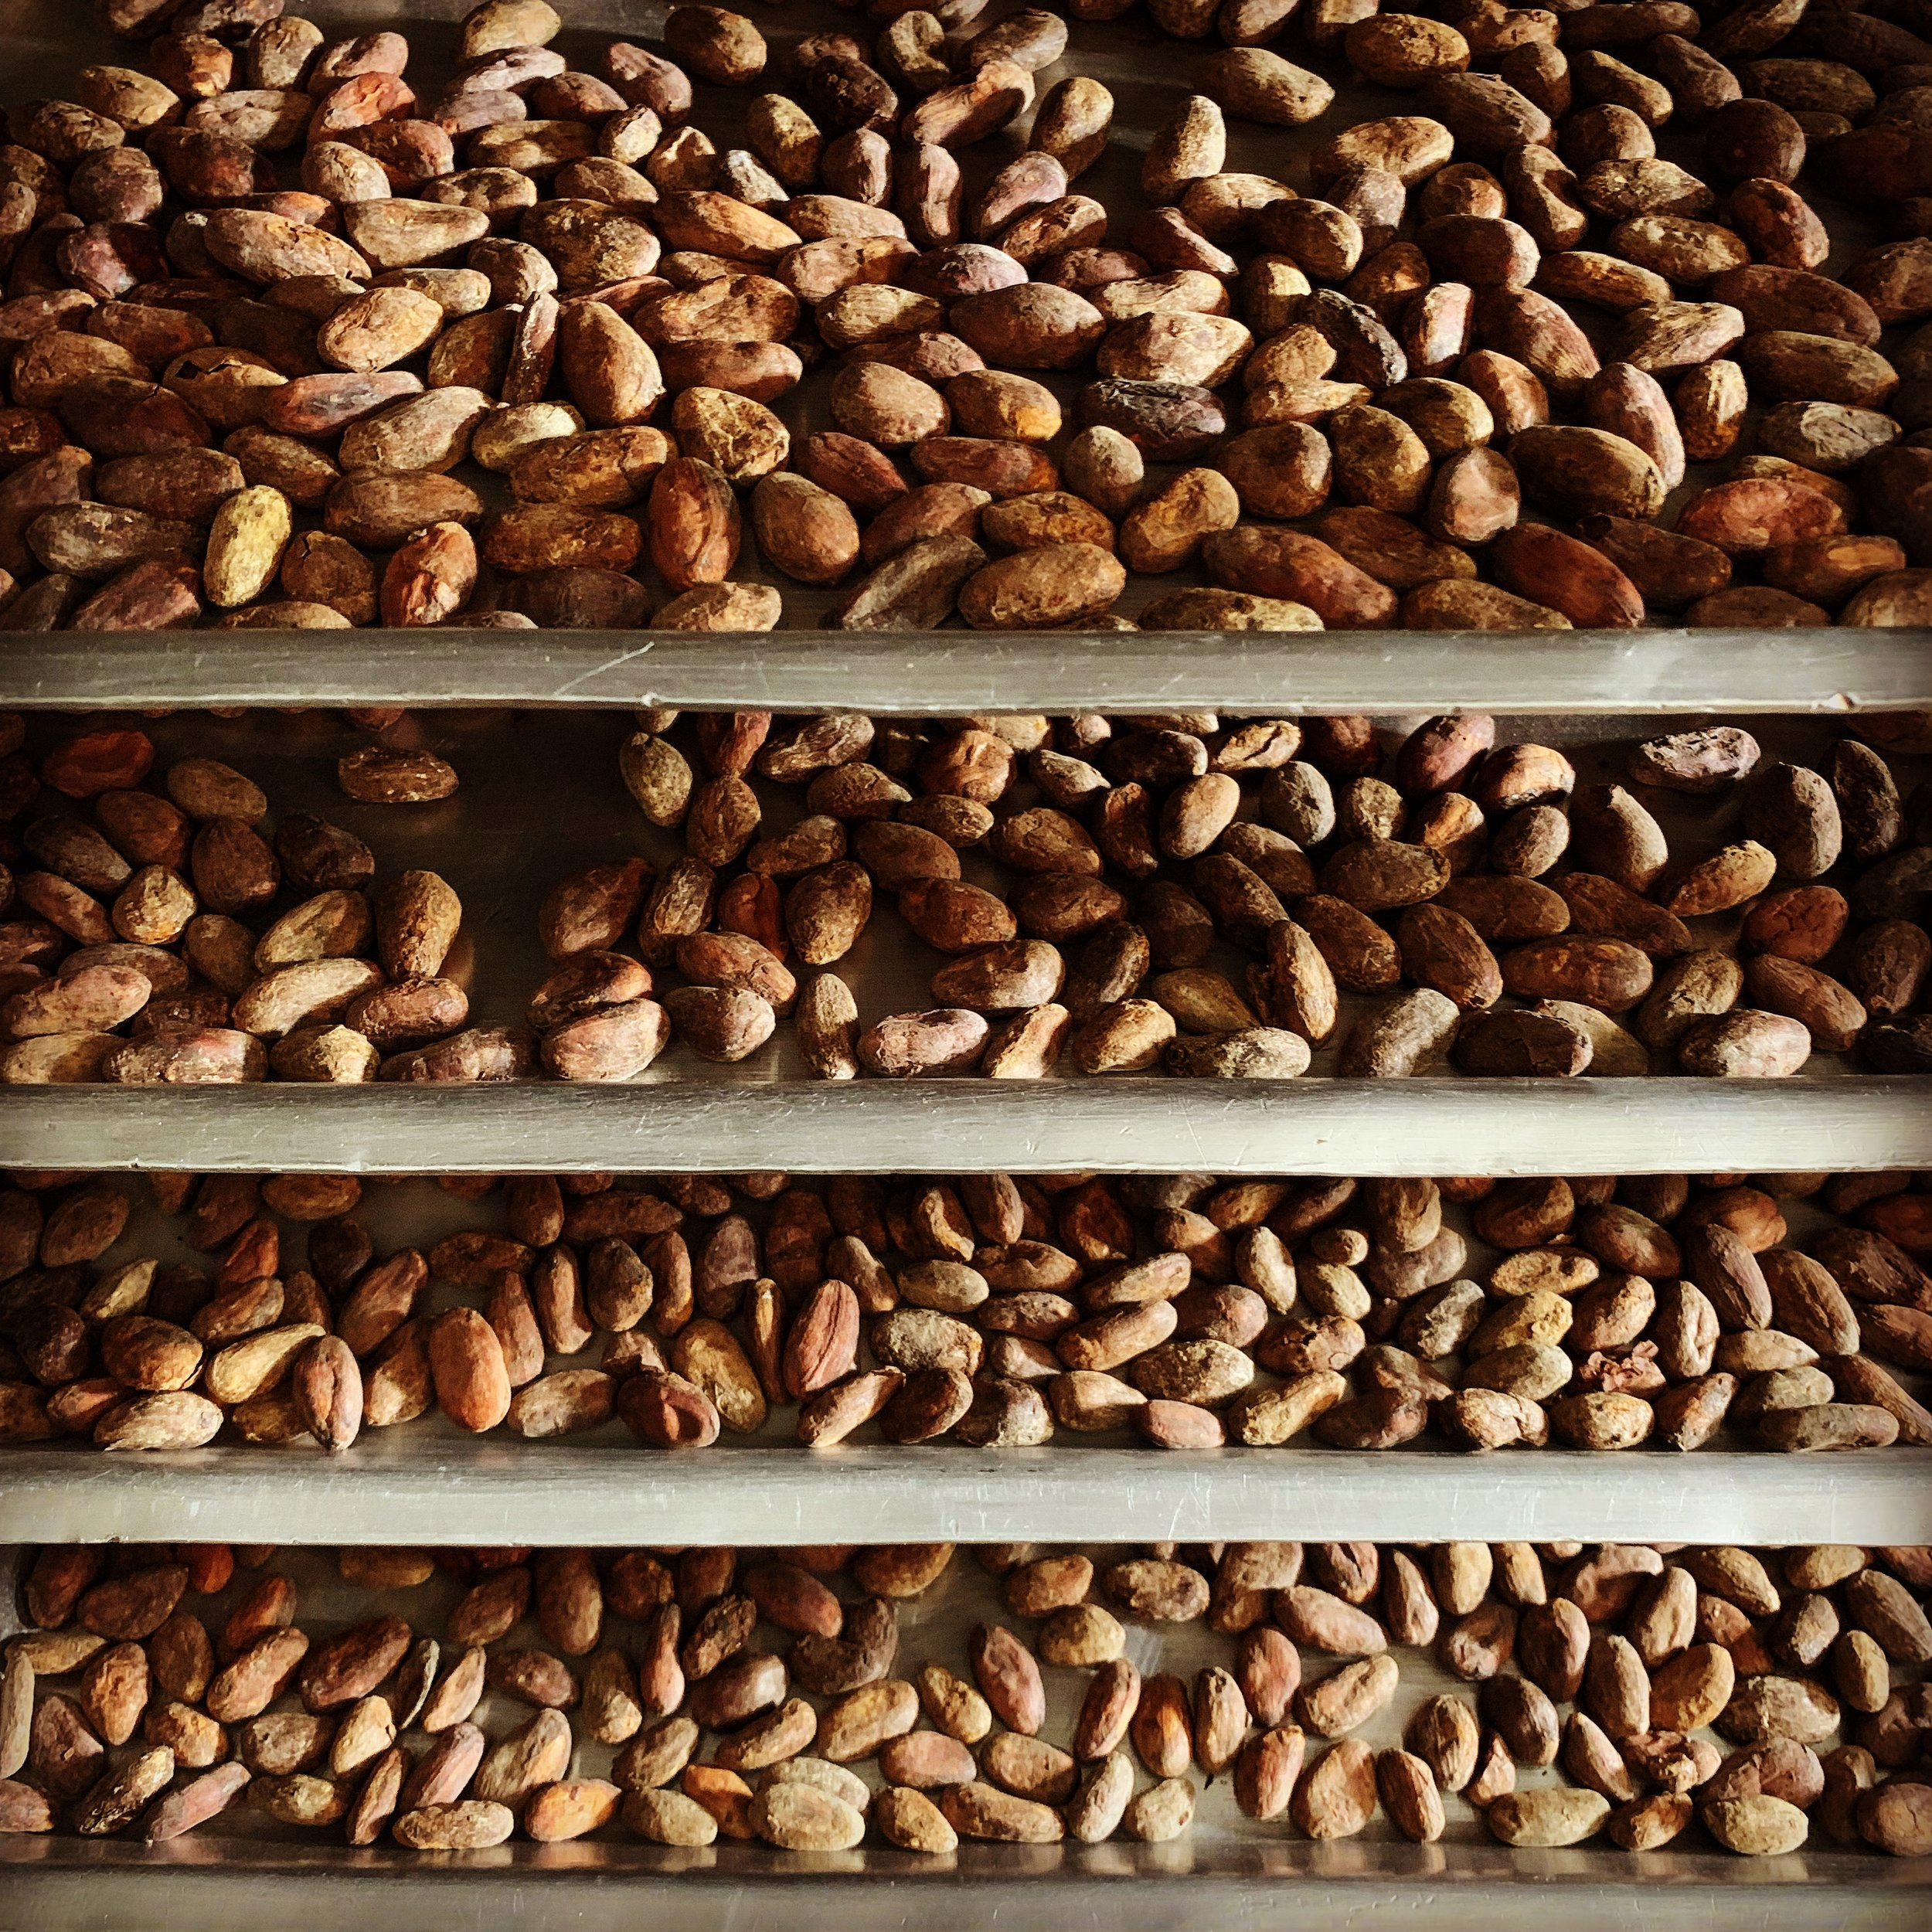 Roasting - Each bean variety has its own individual roasting profile and they are roasted to retain their flavour notes.We adjust how we long we roast and the temperature we roast at, as this is a key stage for the production of chocolate.